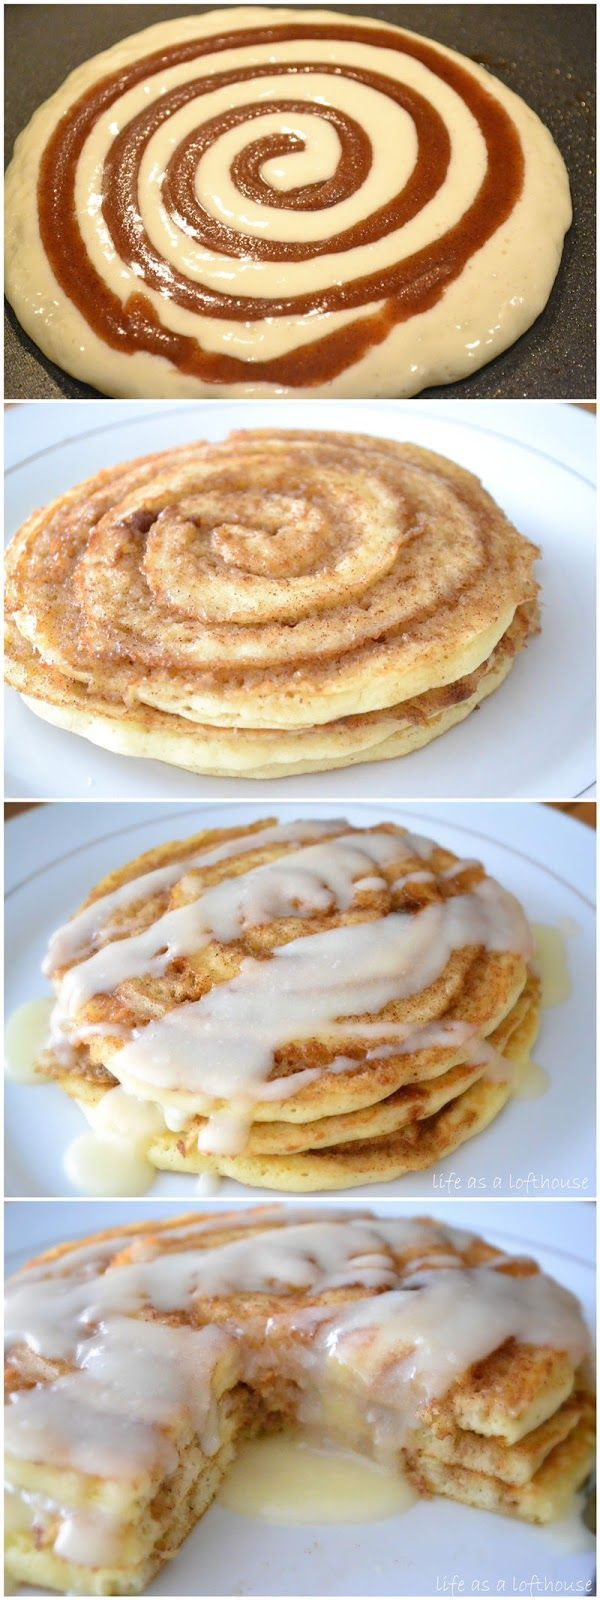 toptenlook: Cinnamon Roll Pancakes OMG yum!! And such simple everyday ingredients!!.